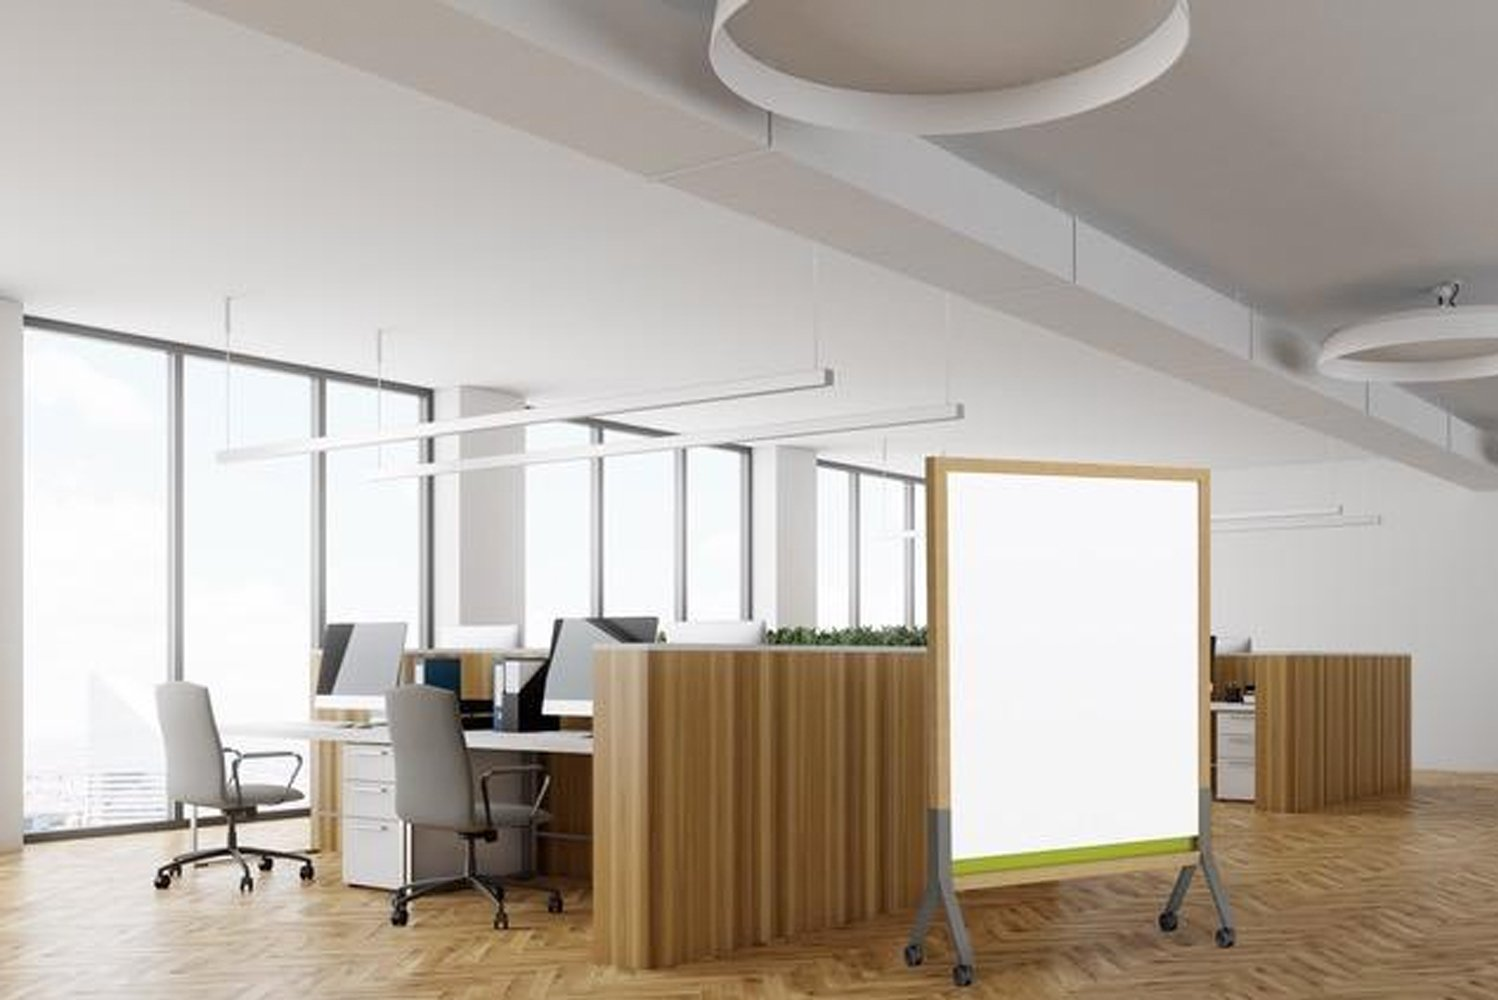 Mix is a line of customizable mobile and wall-mounted markerboards composed of wood and metal in a variety of finishes and details.